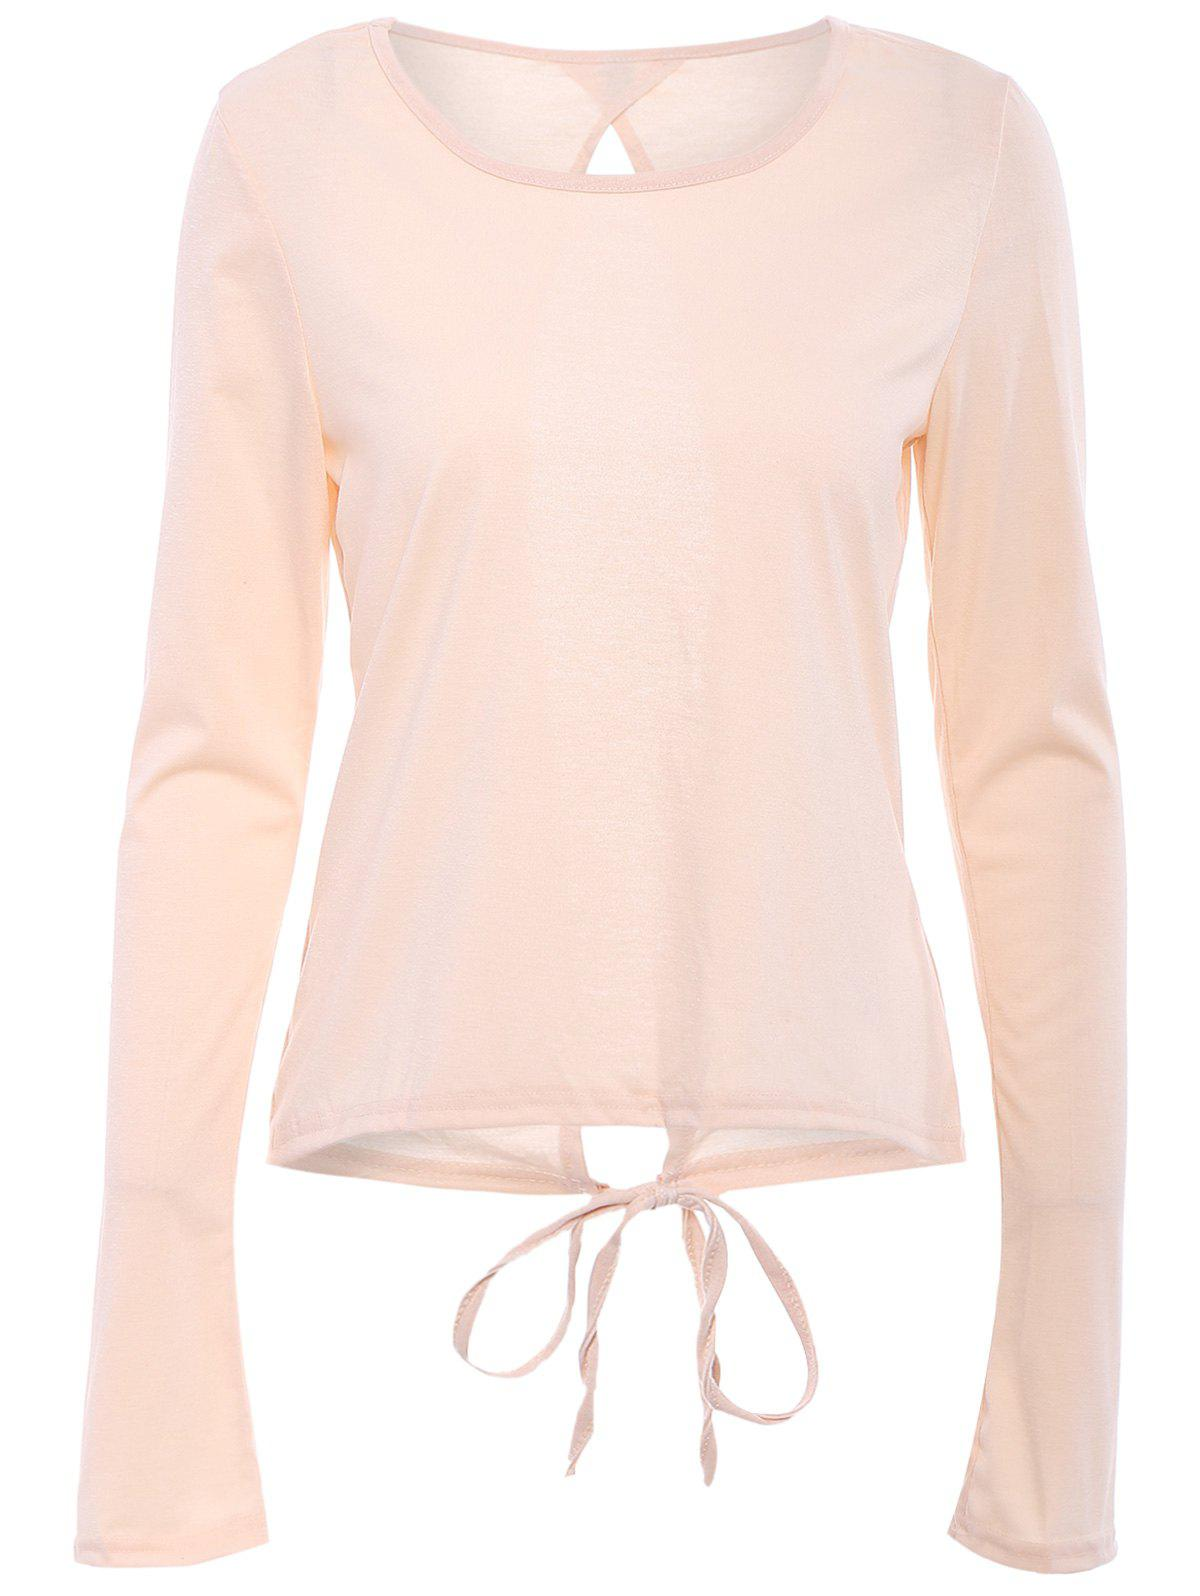 Chic Scoop Neck Long Sleeve Cut Out Pure Color Women's T-Shirt